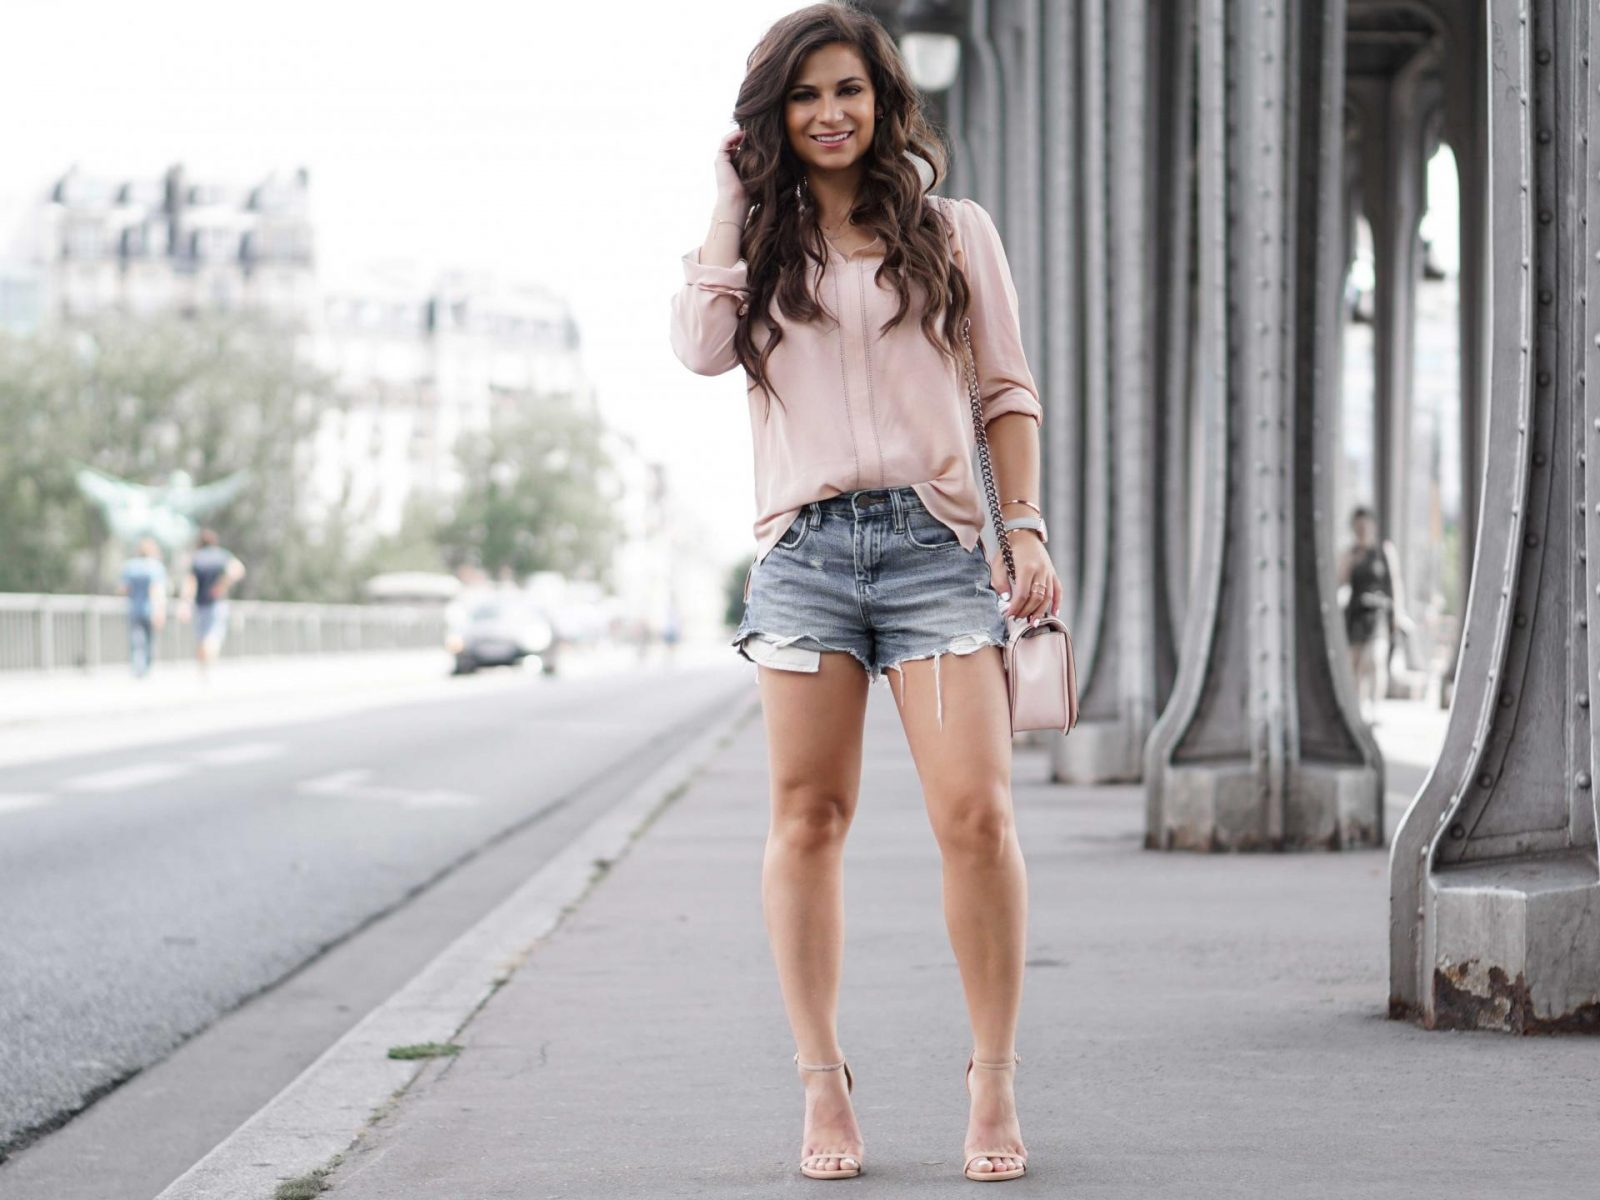 Blush Top and Jean Shorts